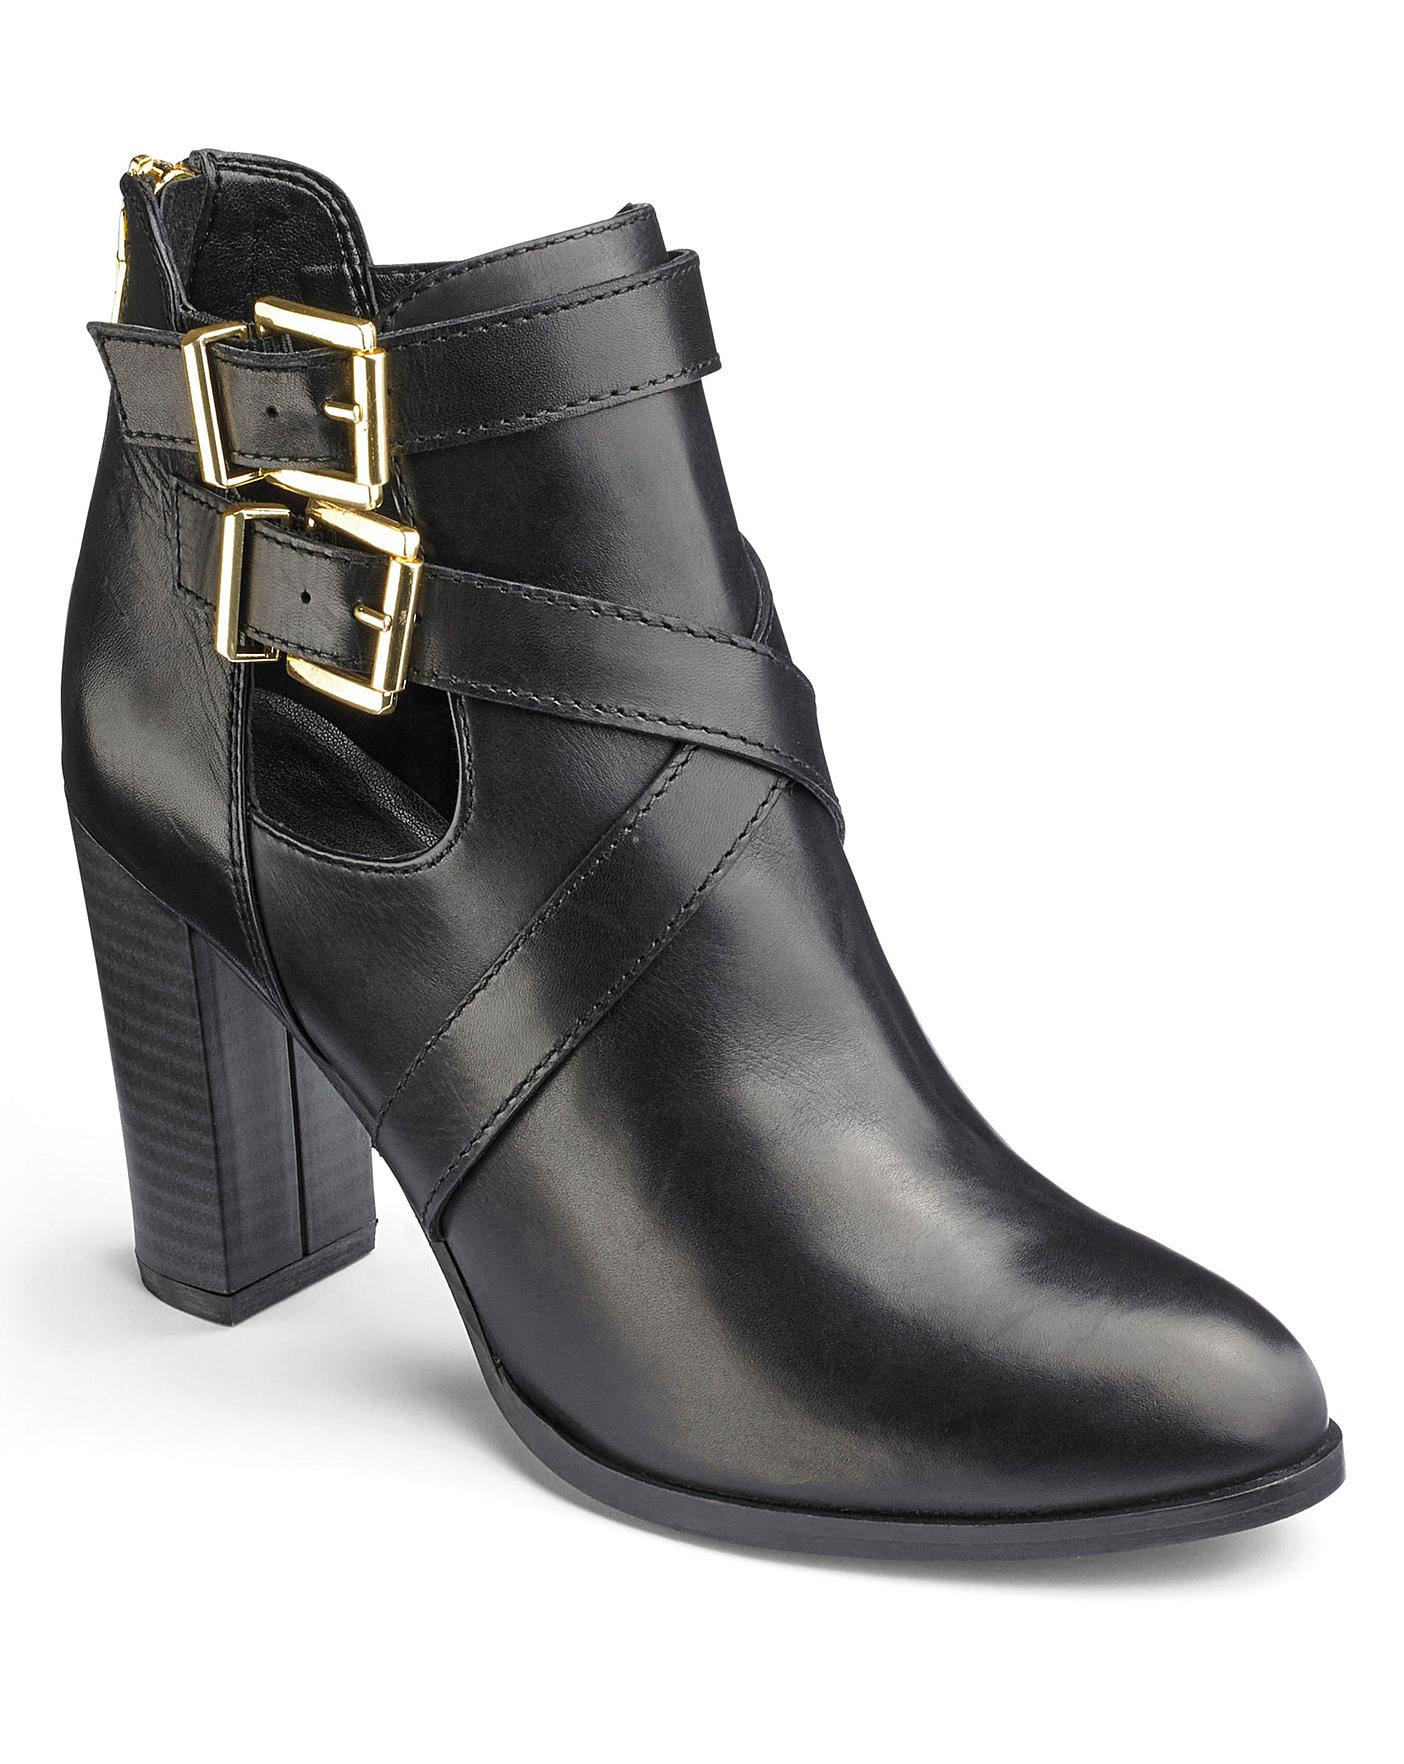 9c9396b5c30 Sole Diva Ankle Boots E Fit